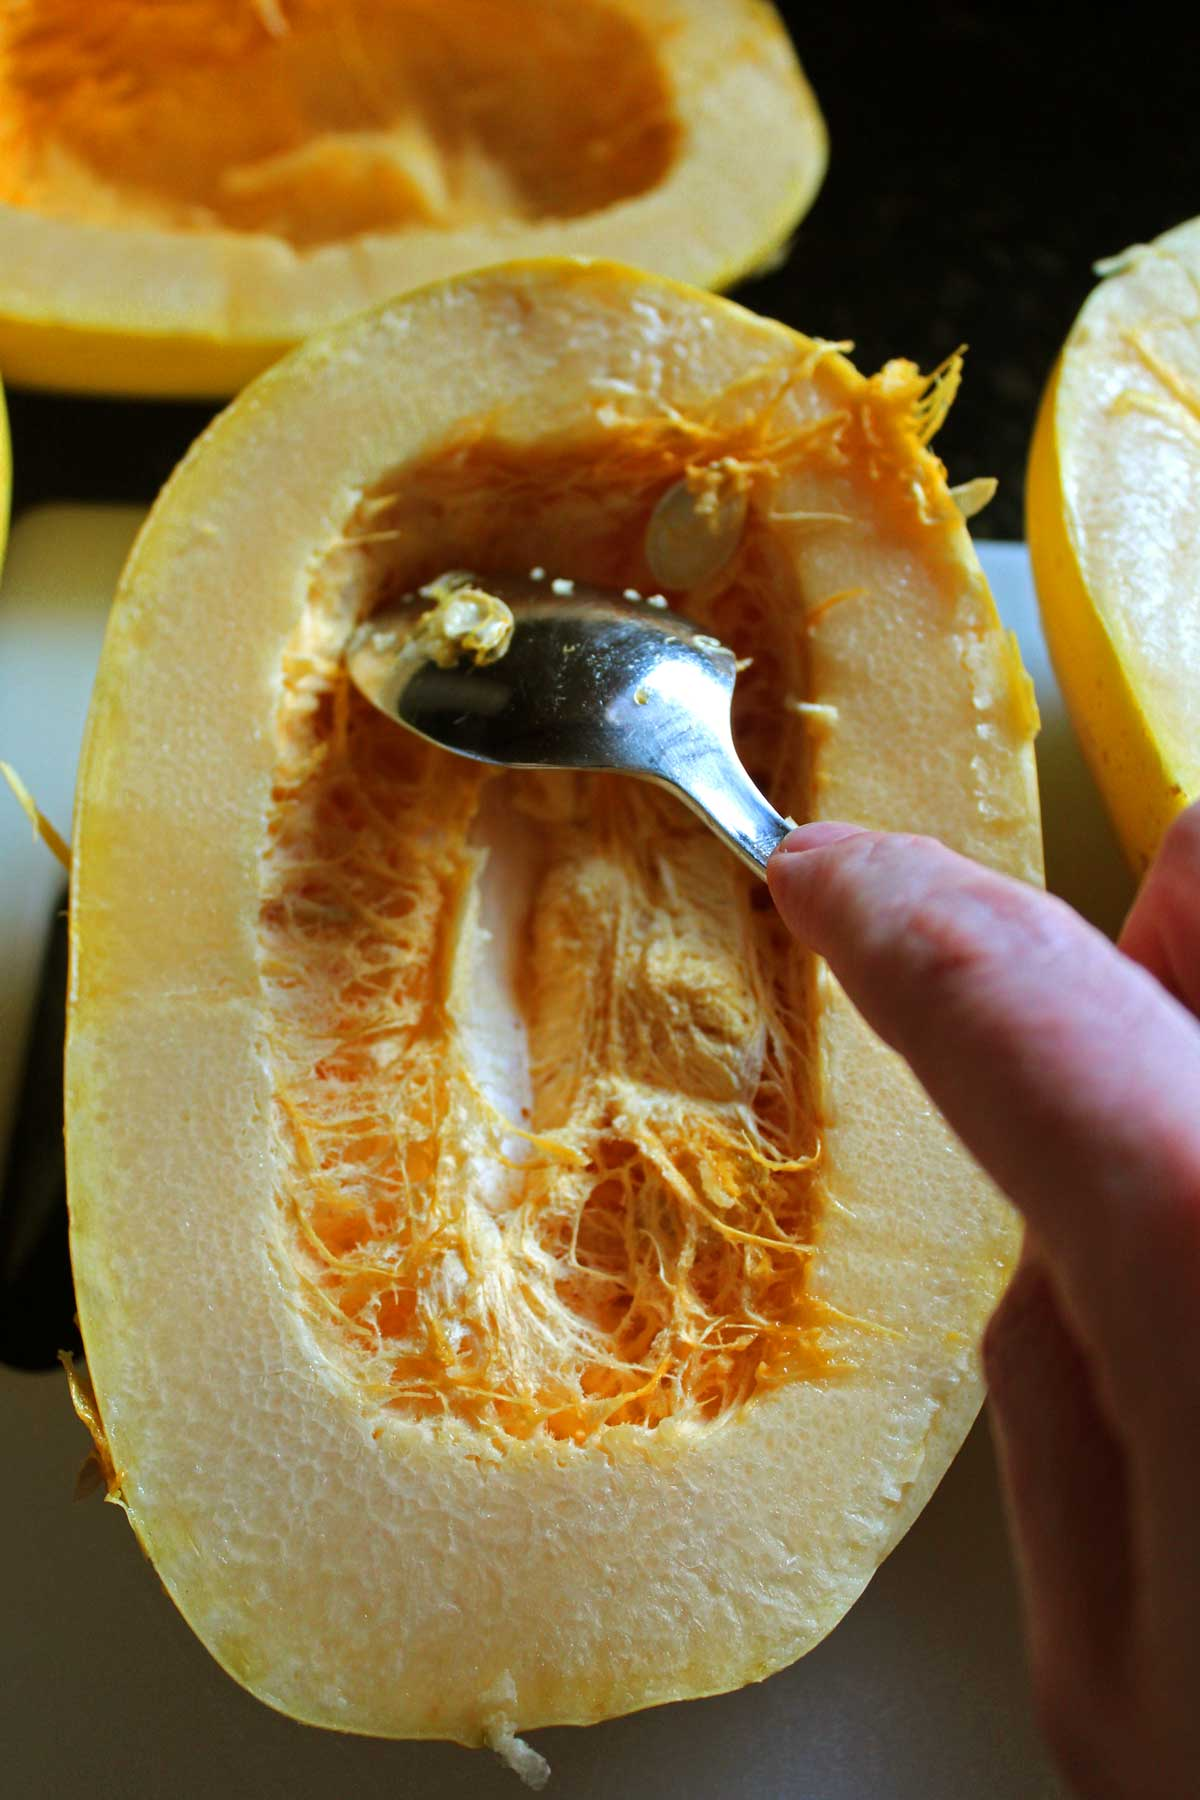 spooning the pulp out of the squash